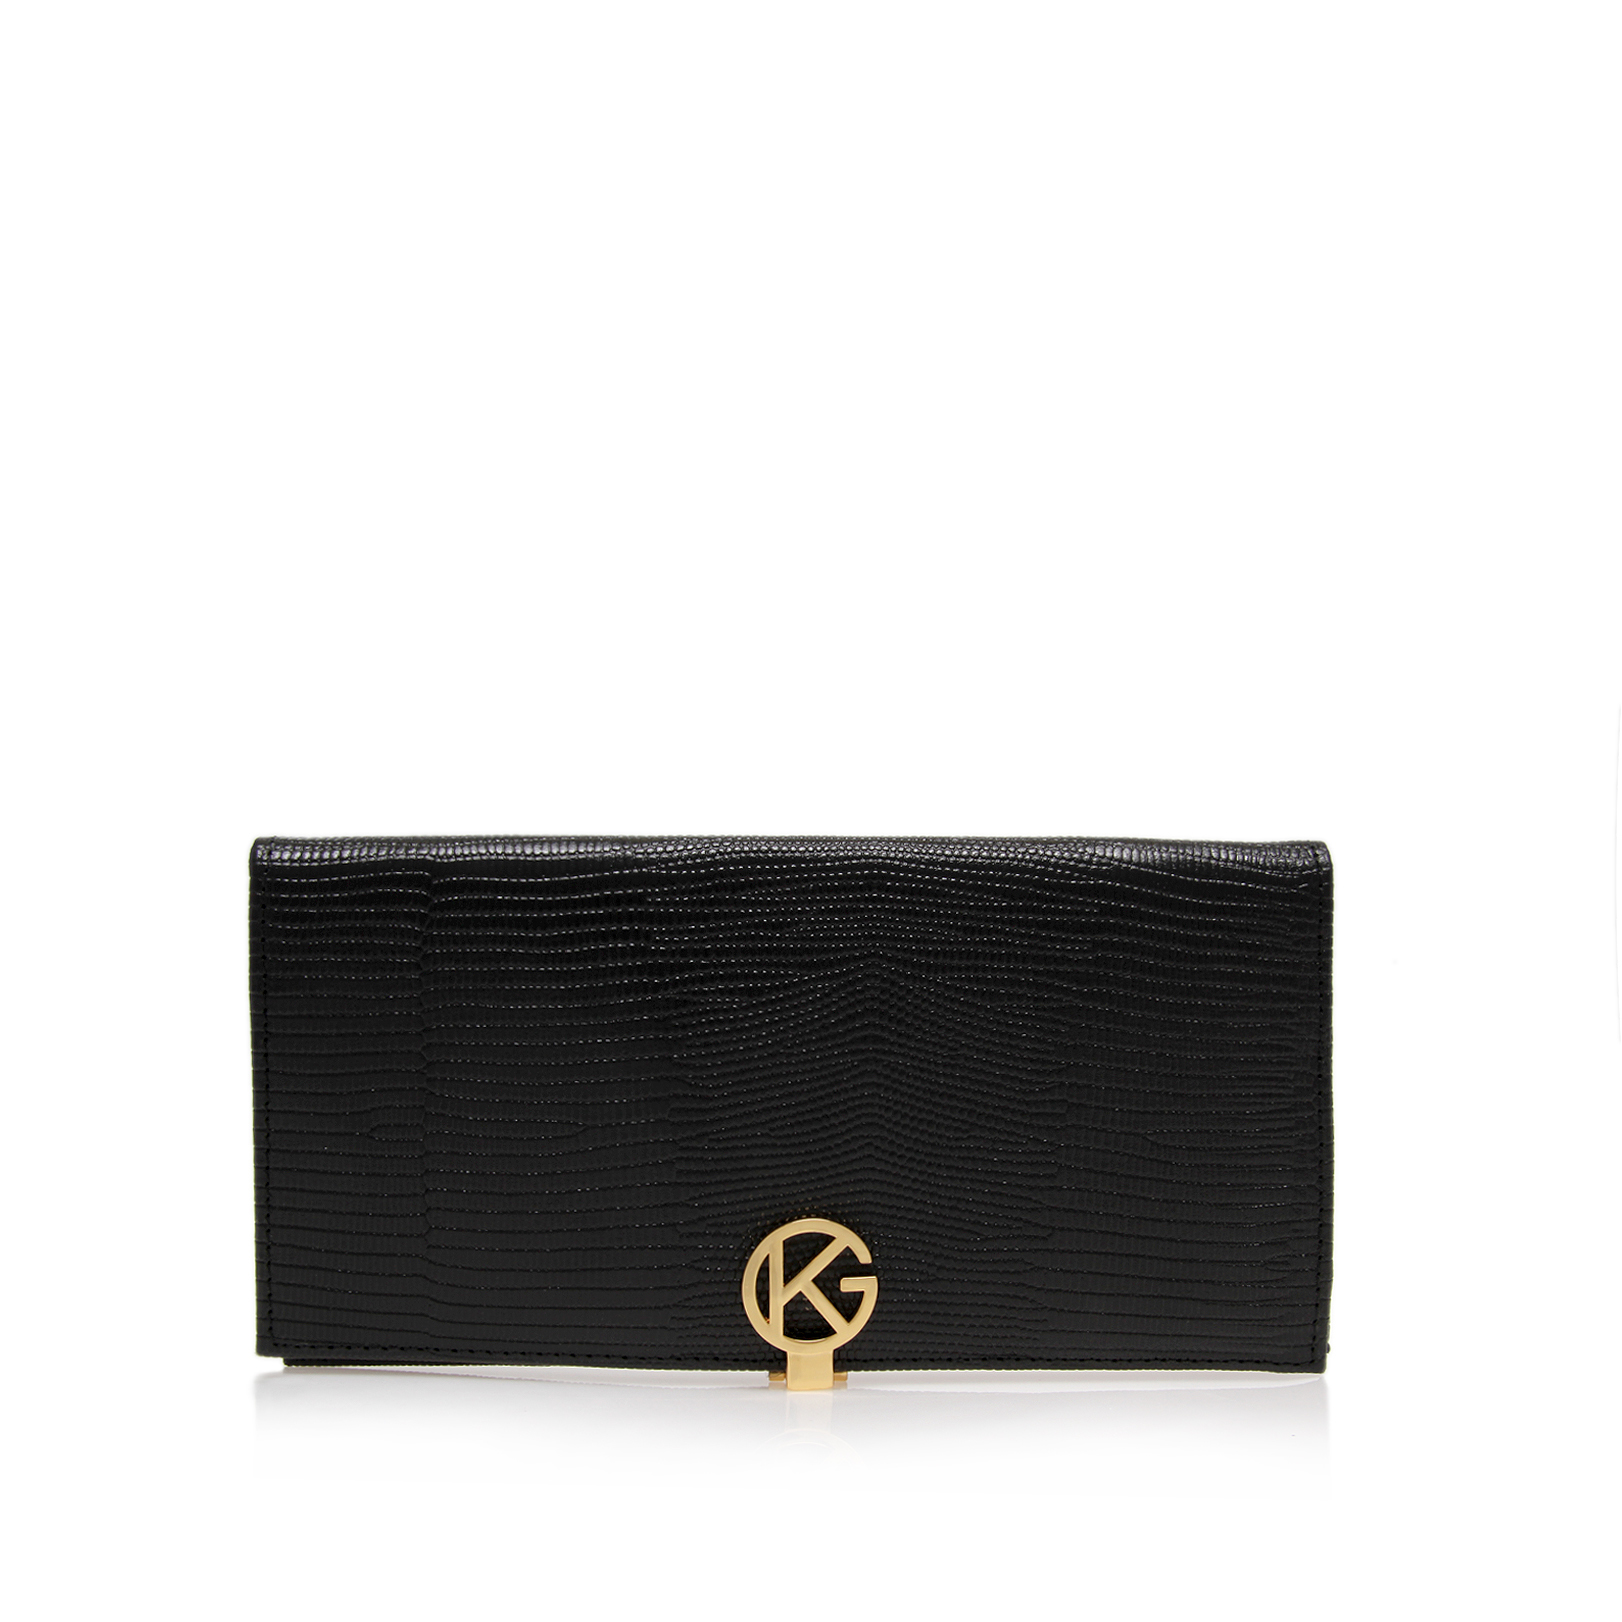 LEATHER LOGO WALLET